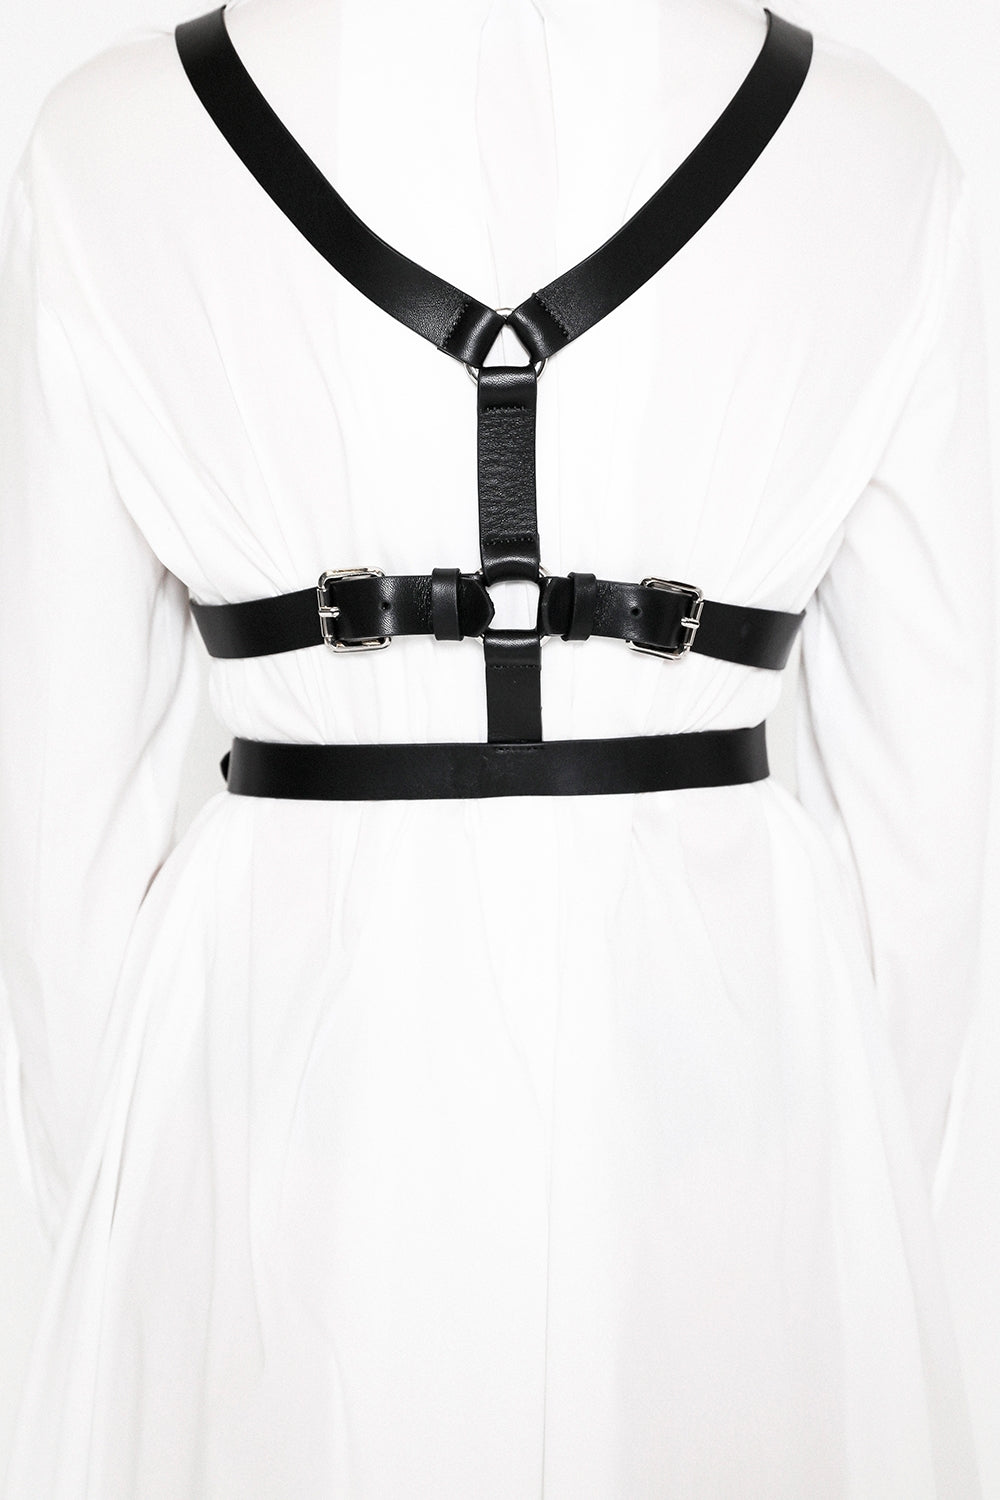 black leather harness with silver metal trims